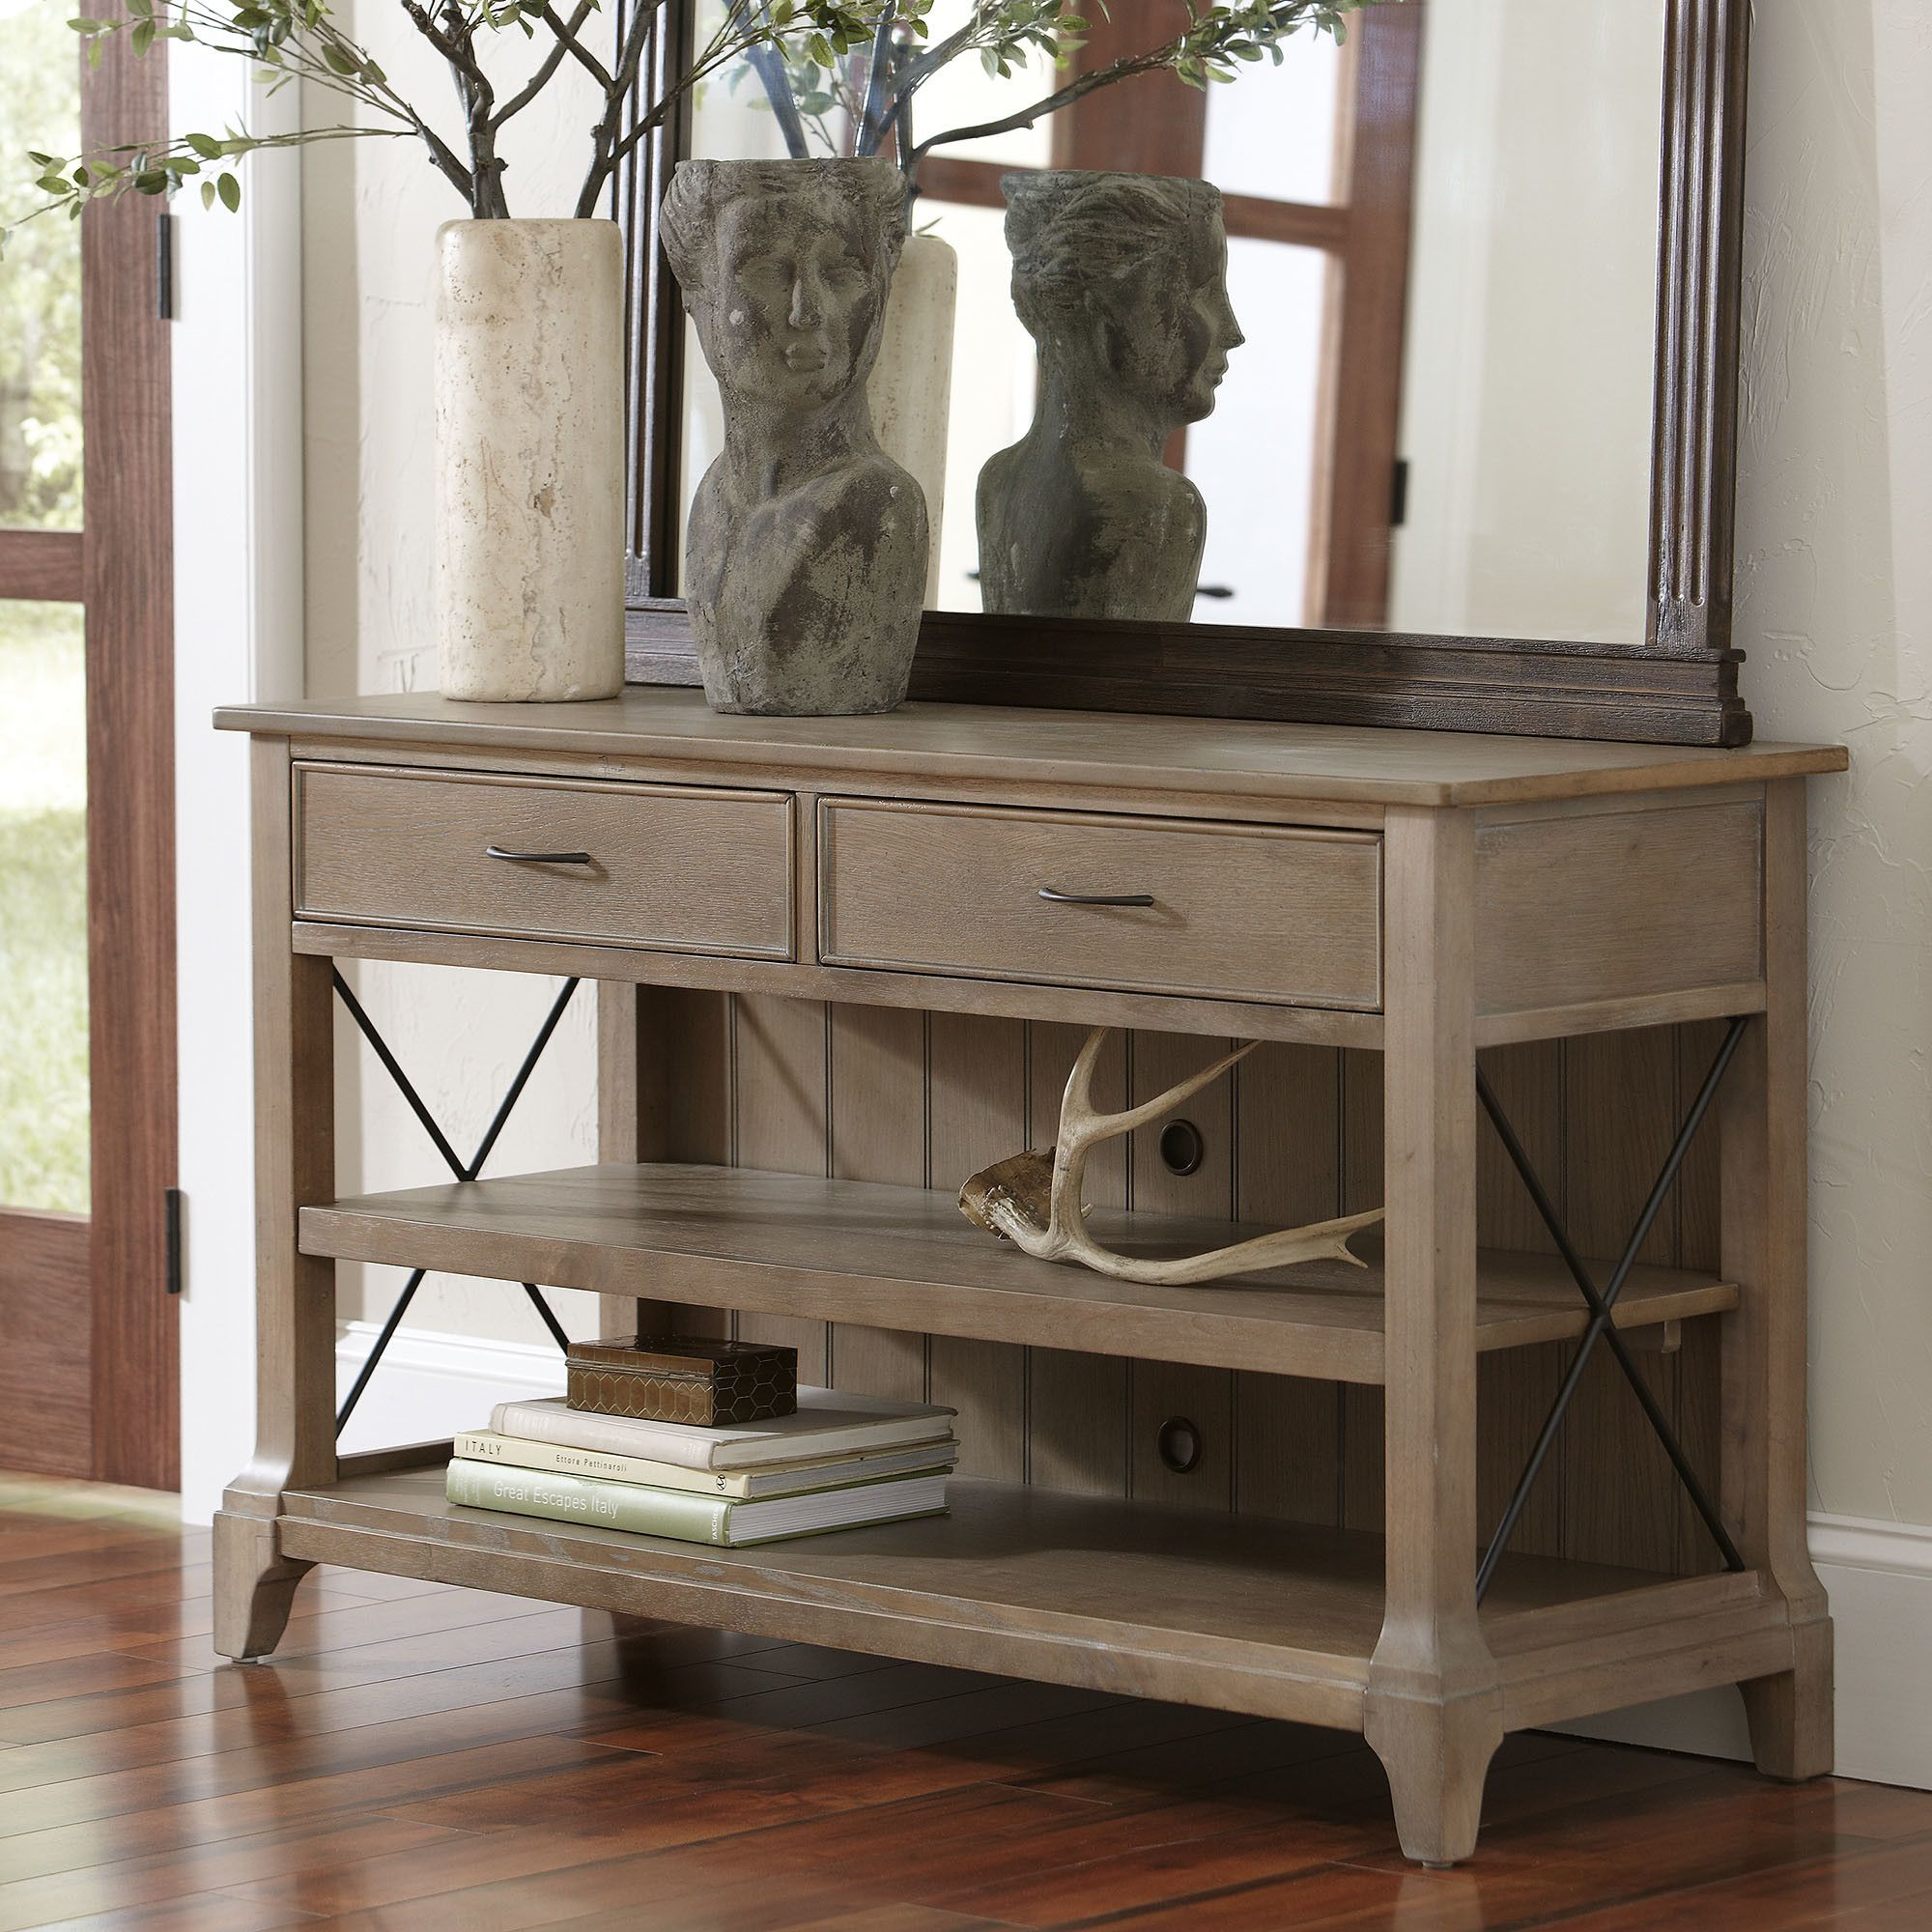 Birch Lane Kenmore Console Table